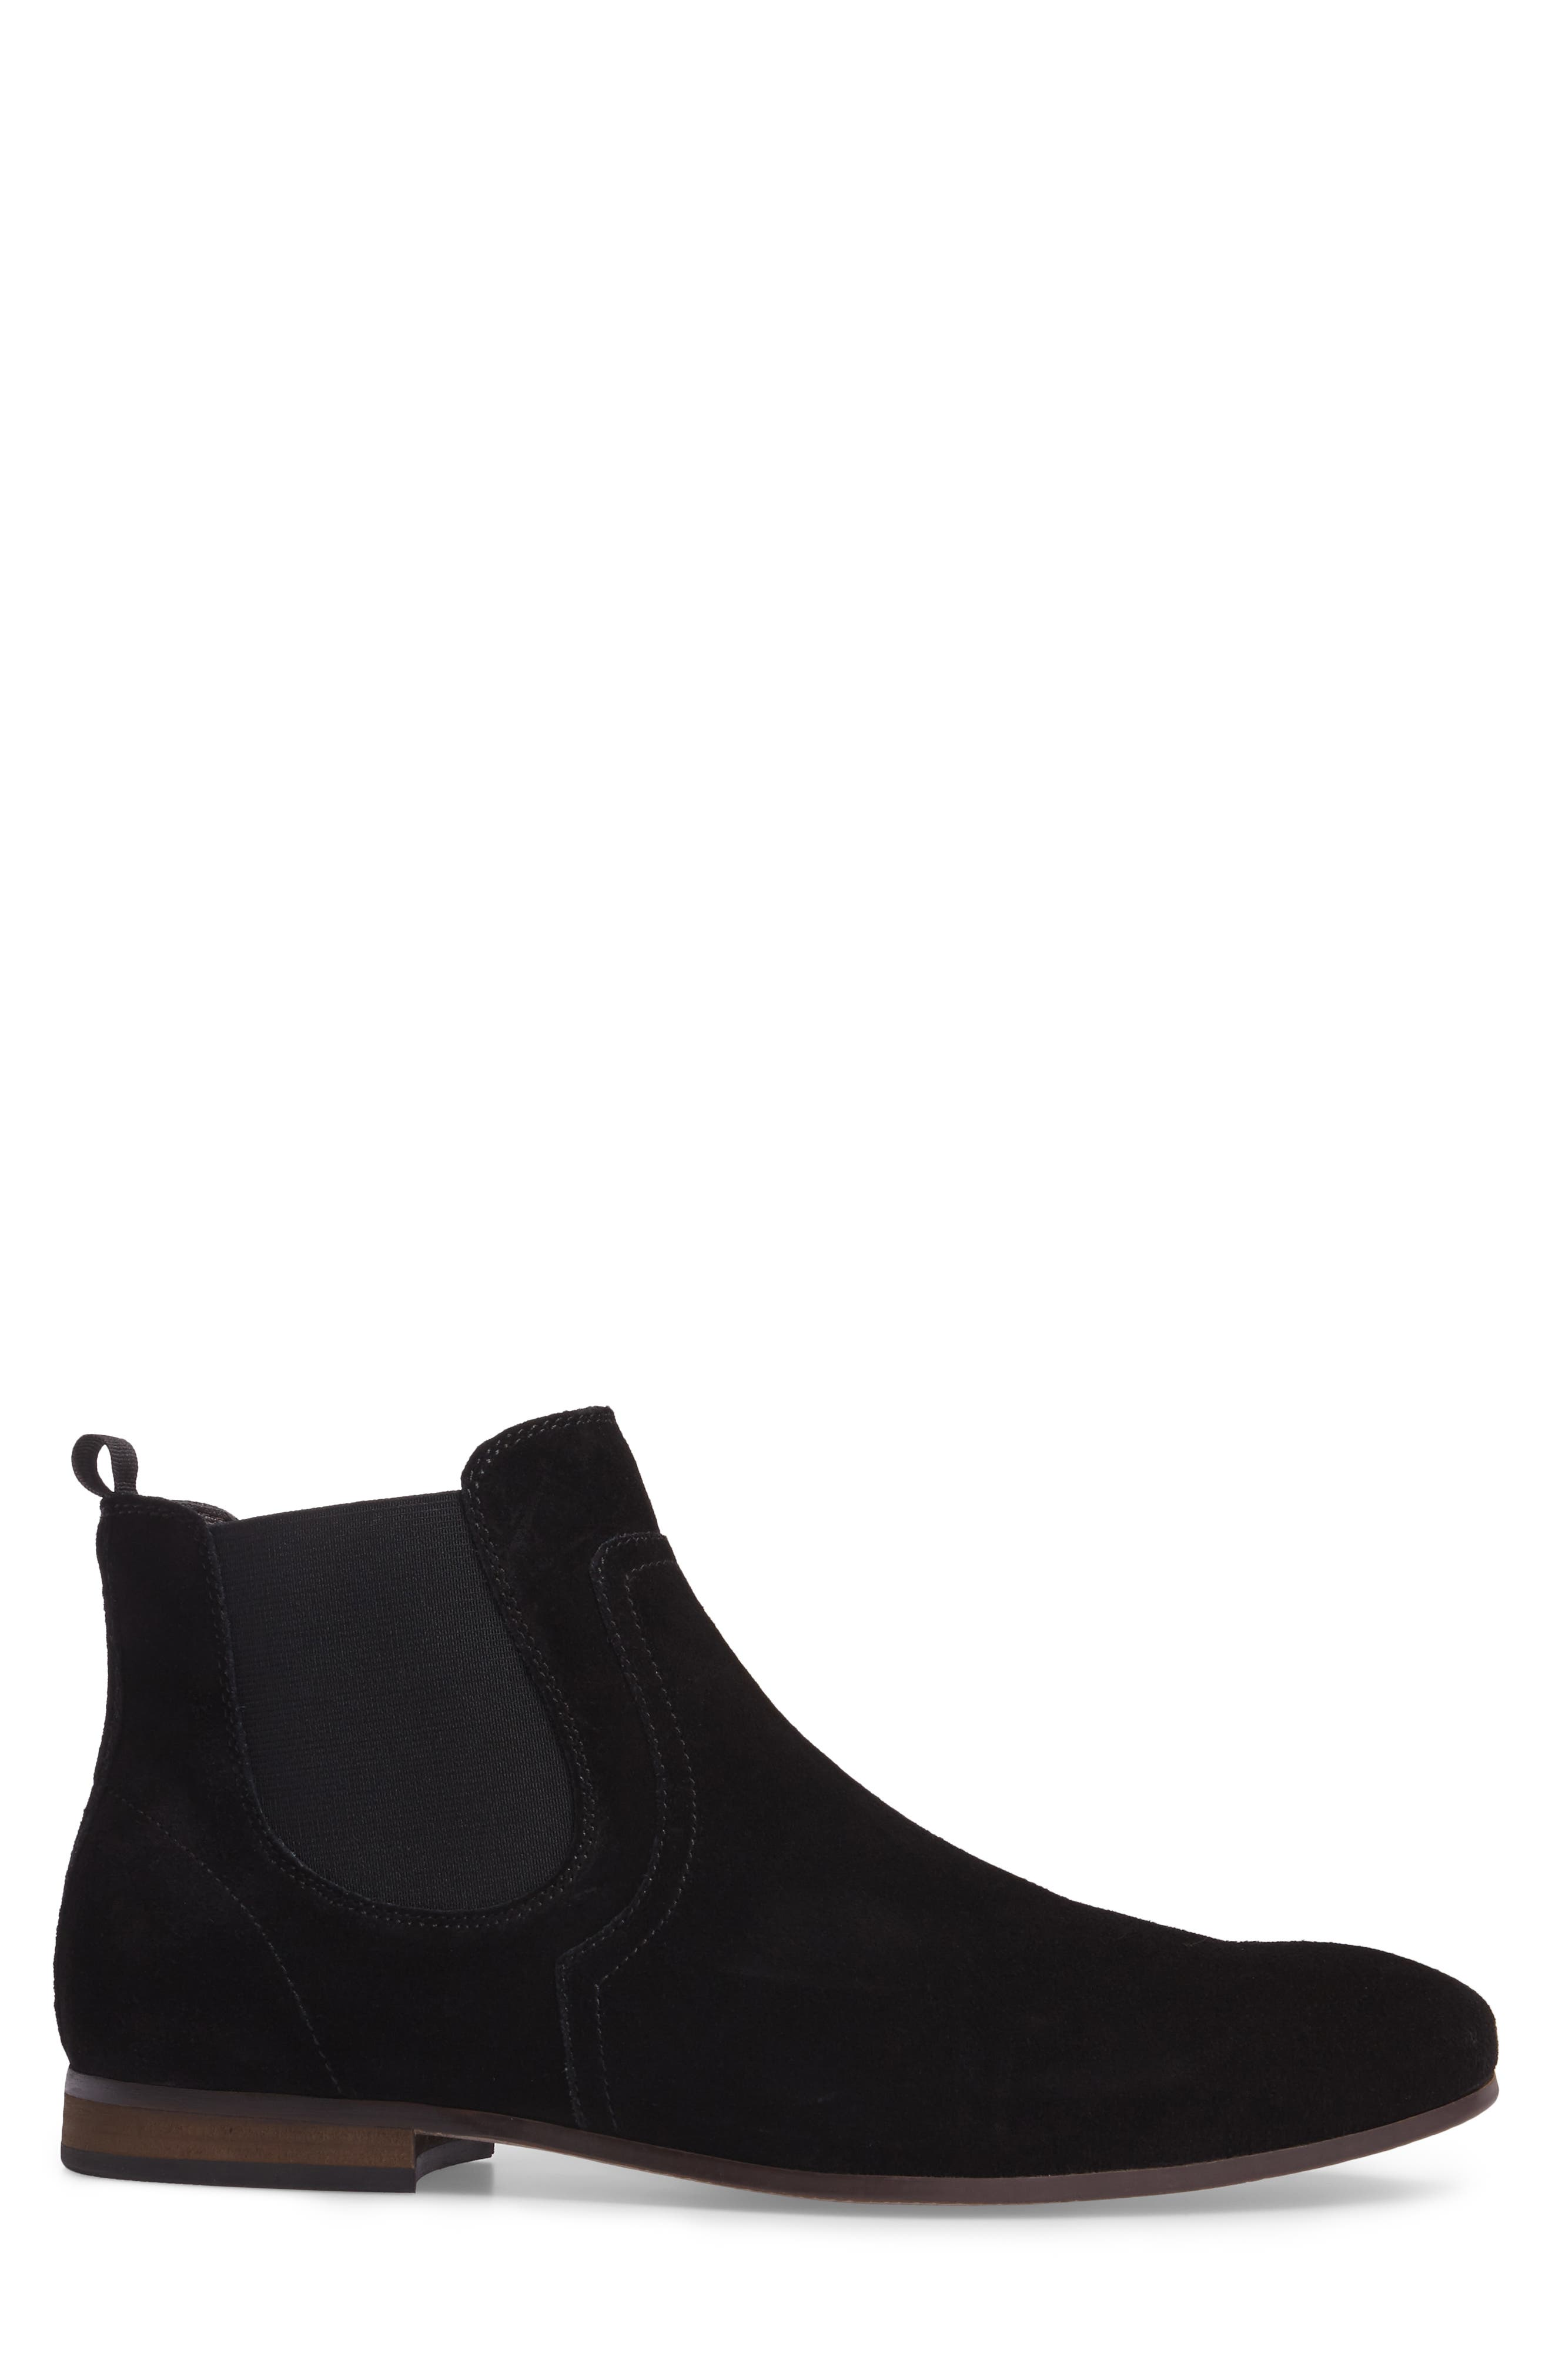 Brysen Chelsea Boot,                             Alternate thumbnail 35, color,